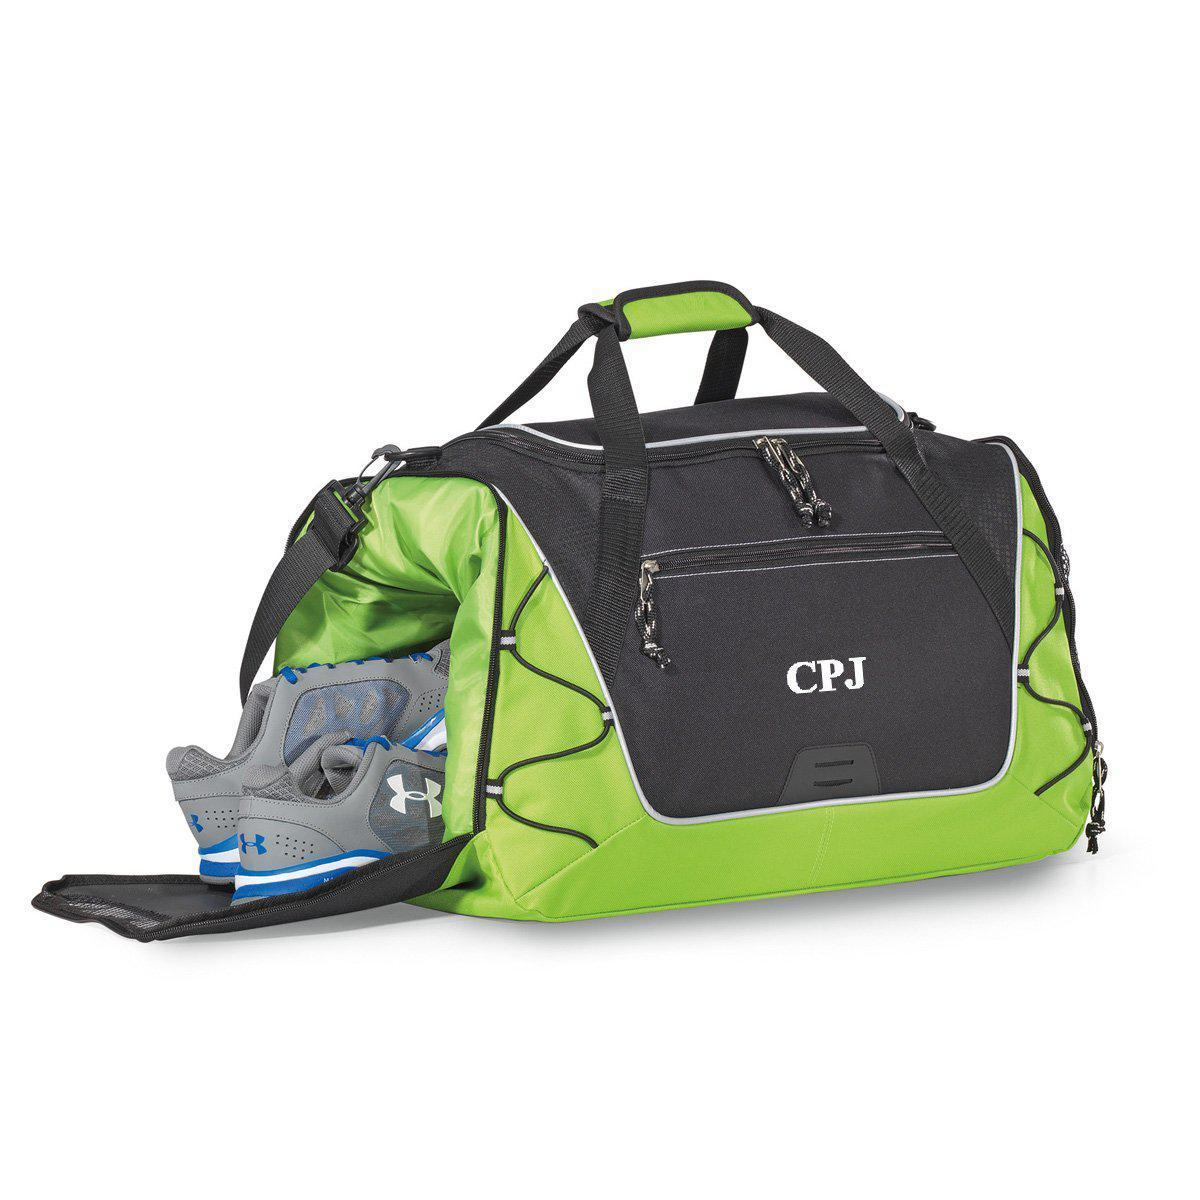 Personalized Duffle and Gym Bag